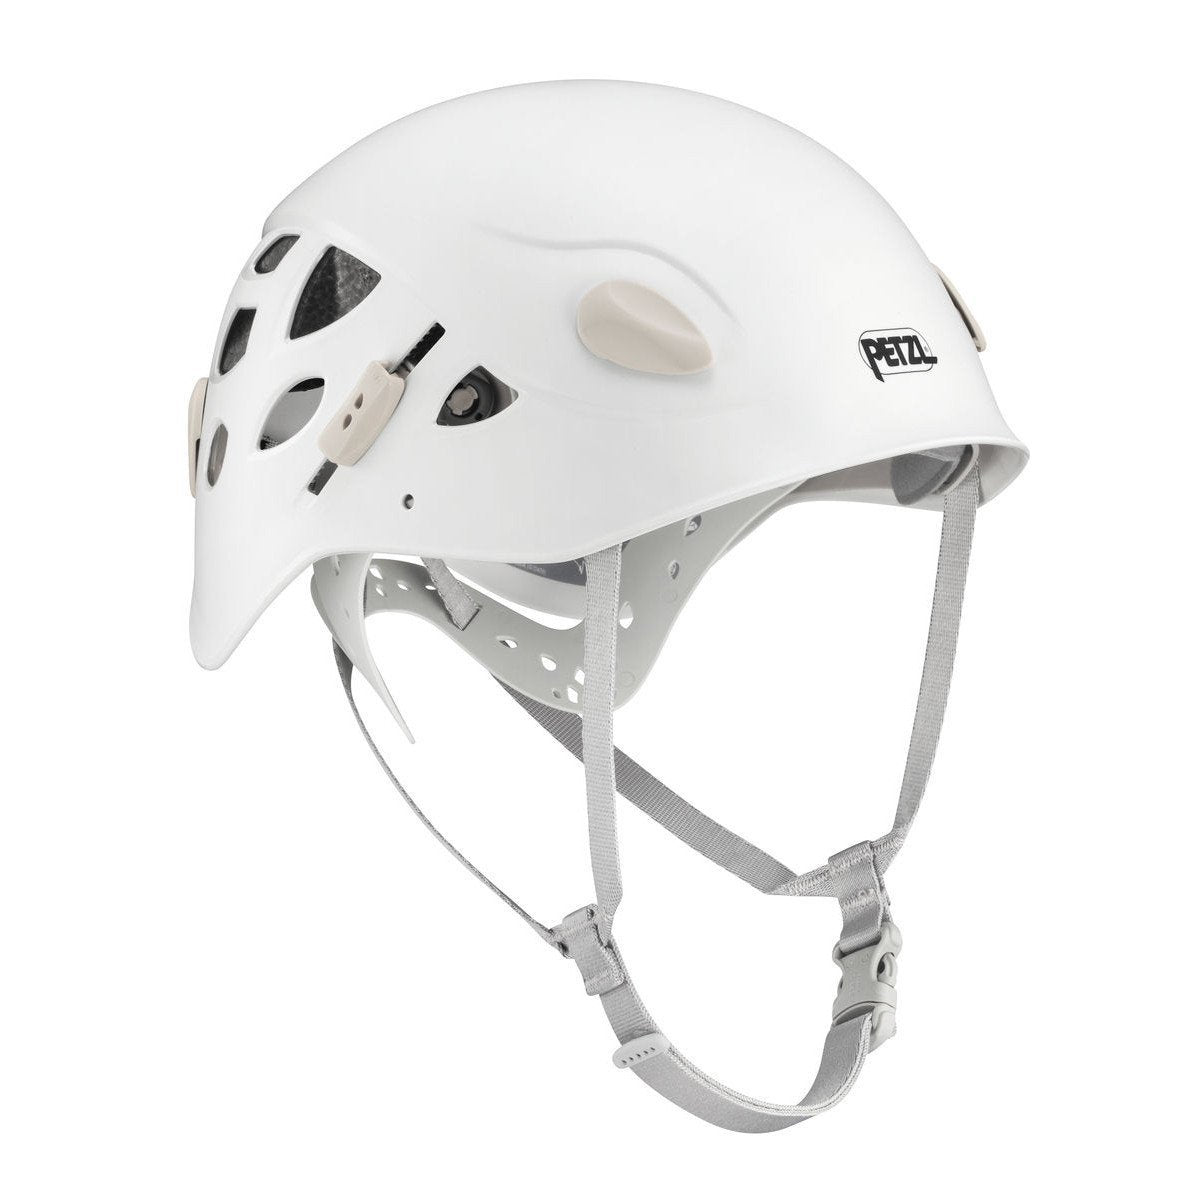 Petzl Elia climbing helmet in White colour